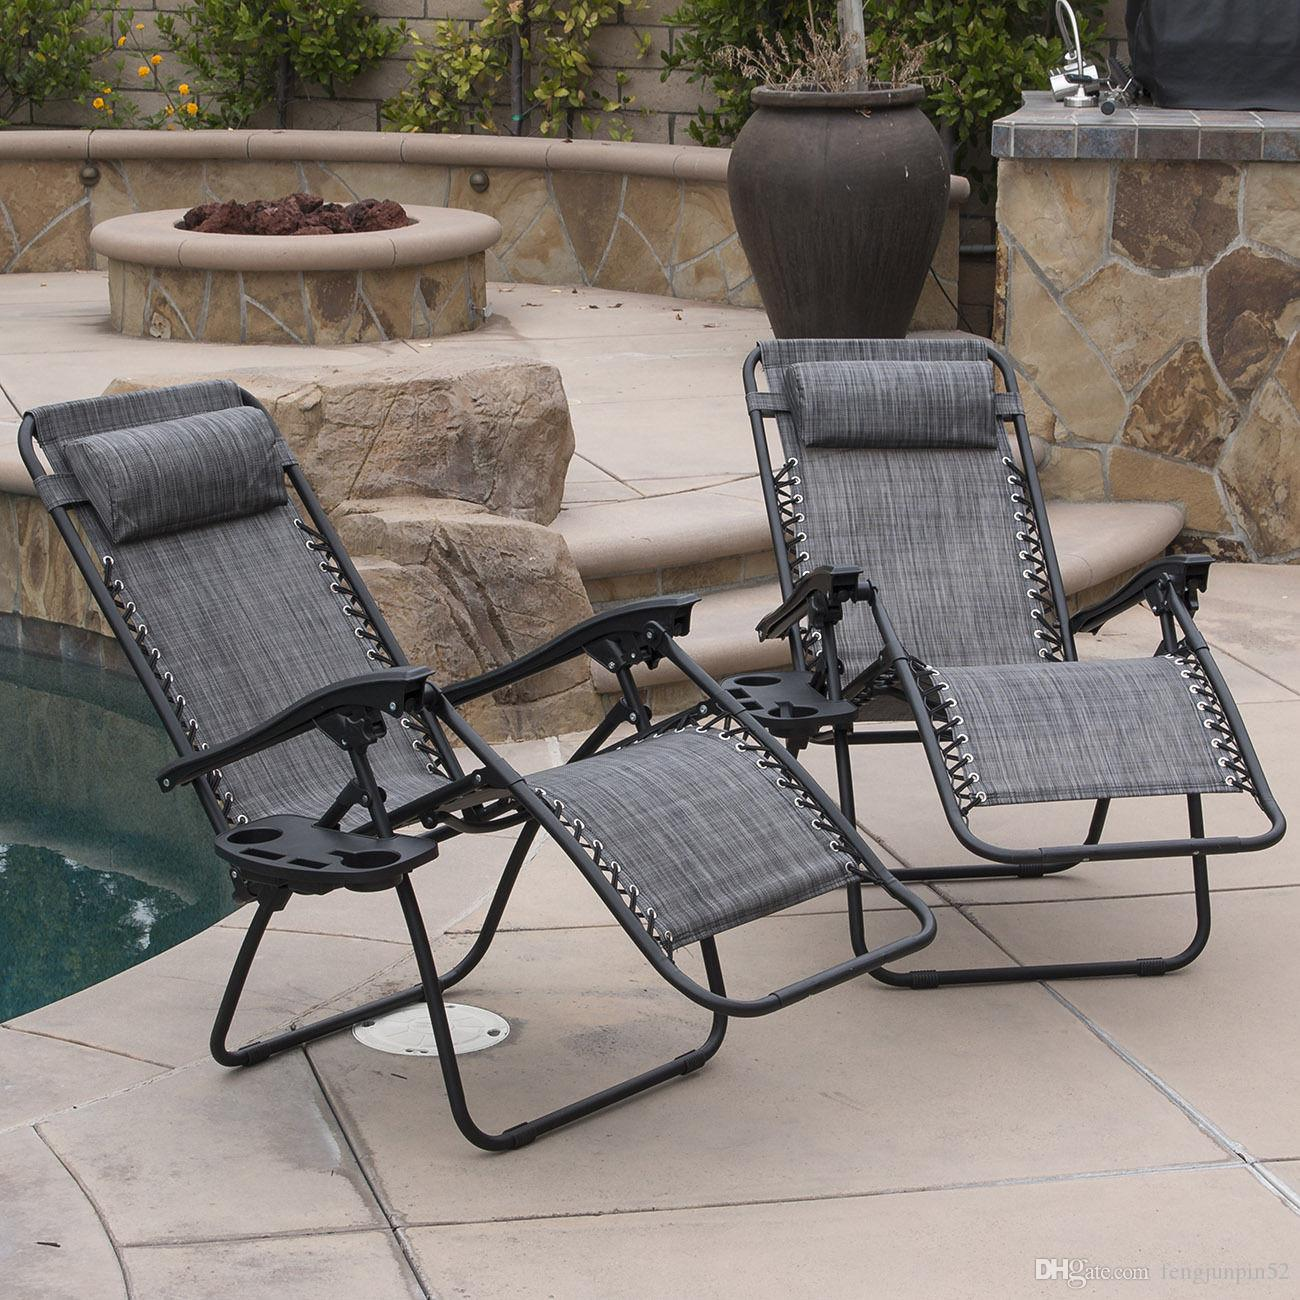 Charmant 2 Lounge Chair Outdoor Zero Gravity Beach Patio Pool Yard Folding Recliner,  Gray Folding Recliner Online With $71.04/Piece On Fengjunpin52u0027s Store |  DHgate. ...